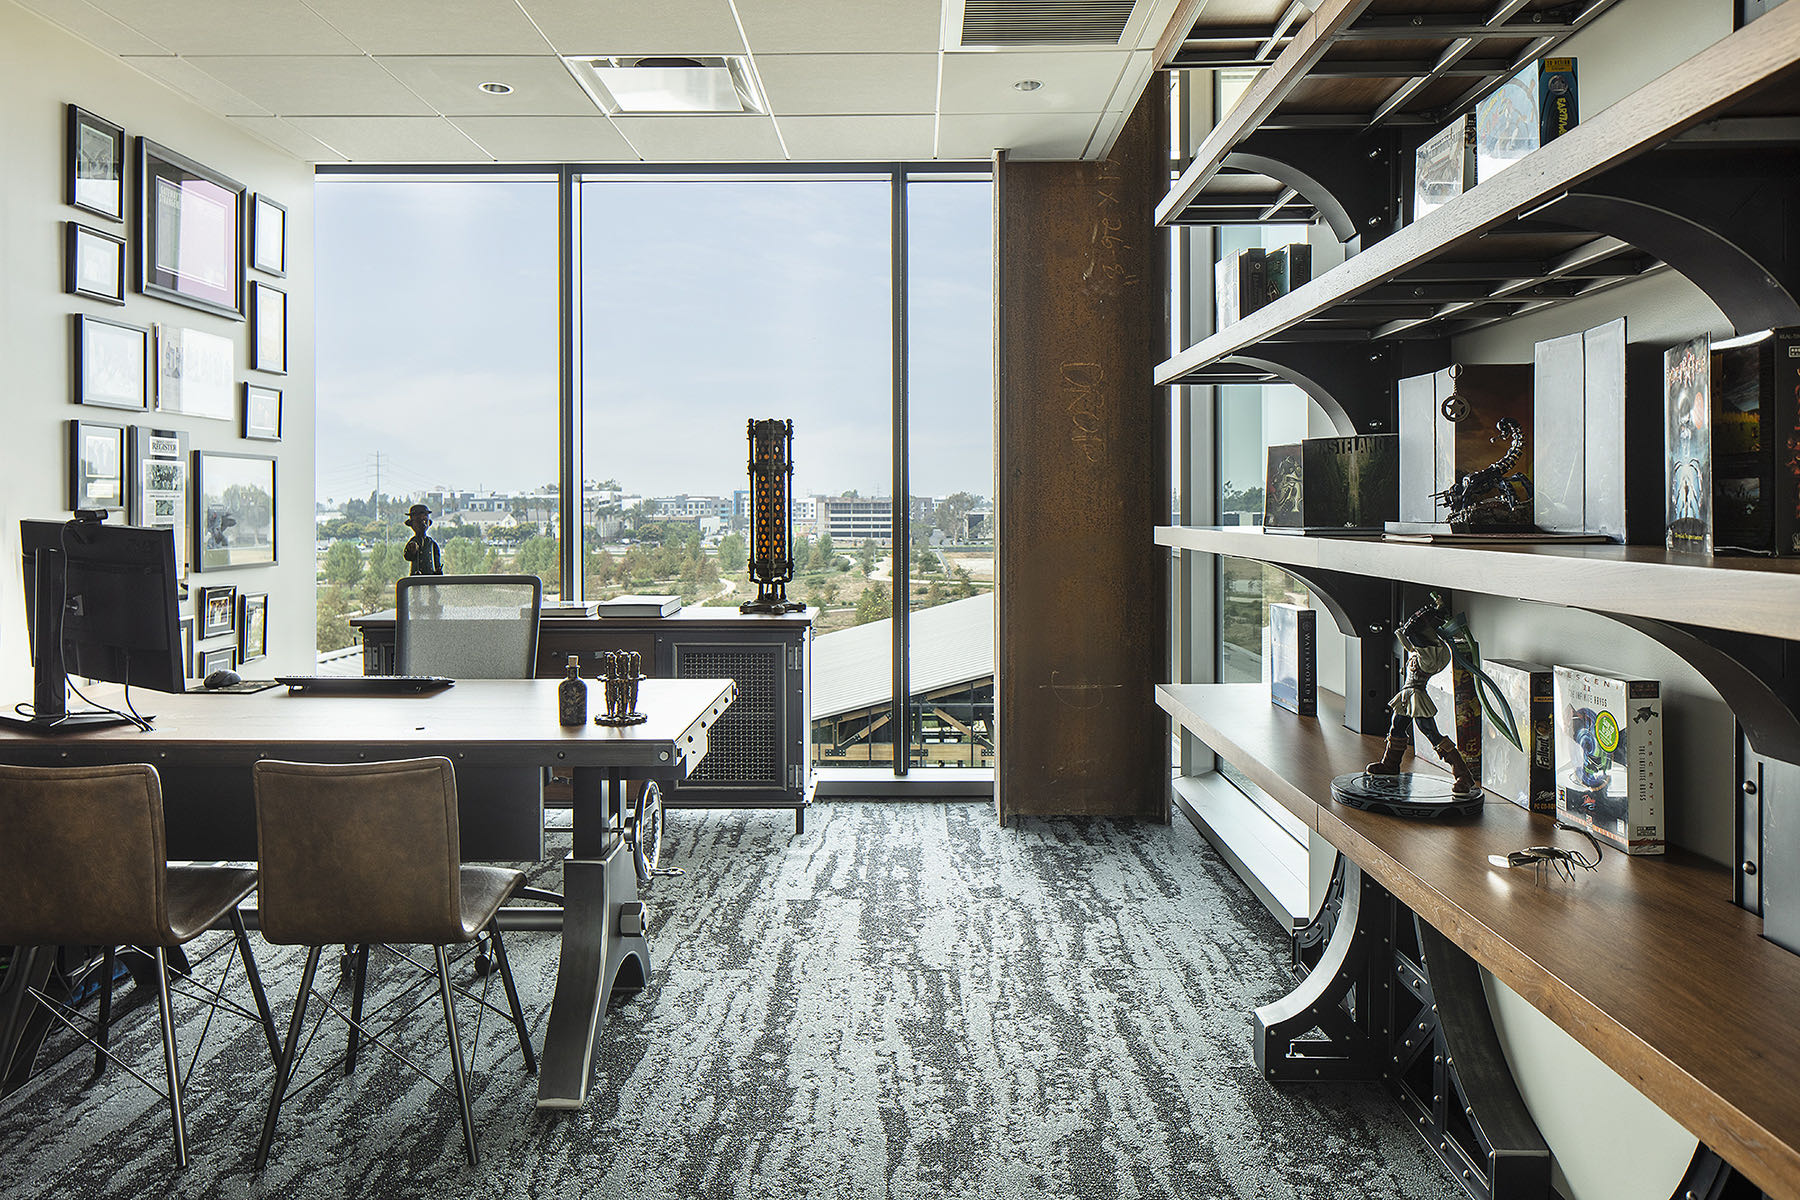 videogaming-company-office-10